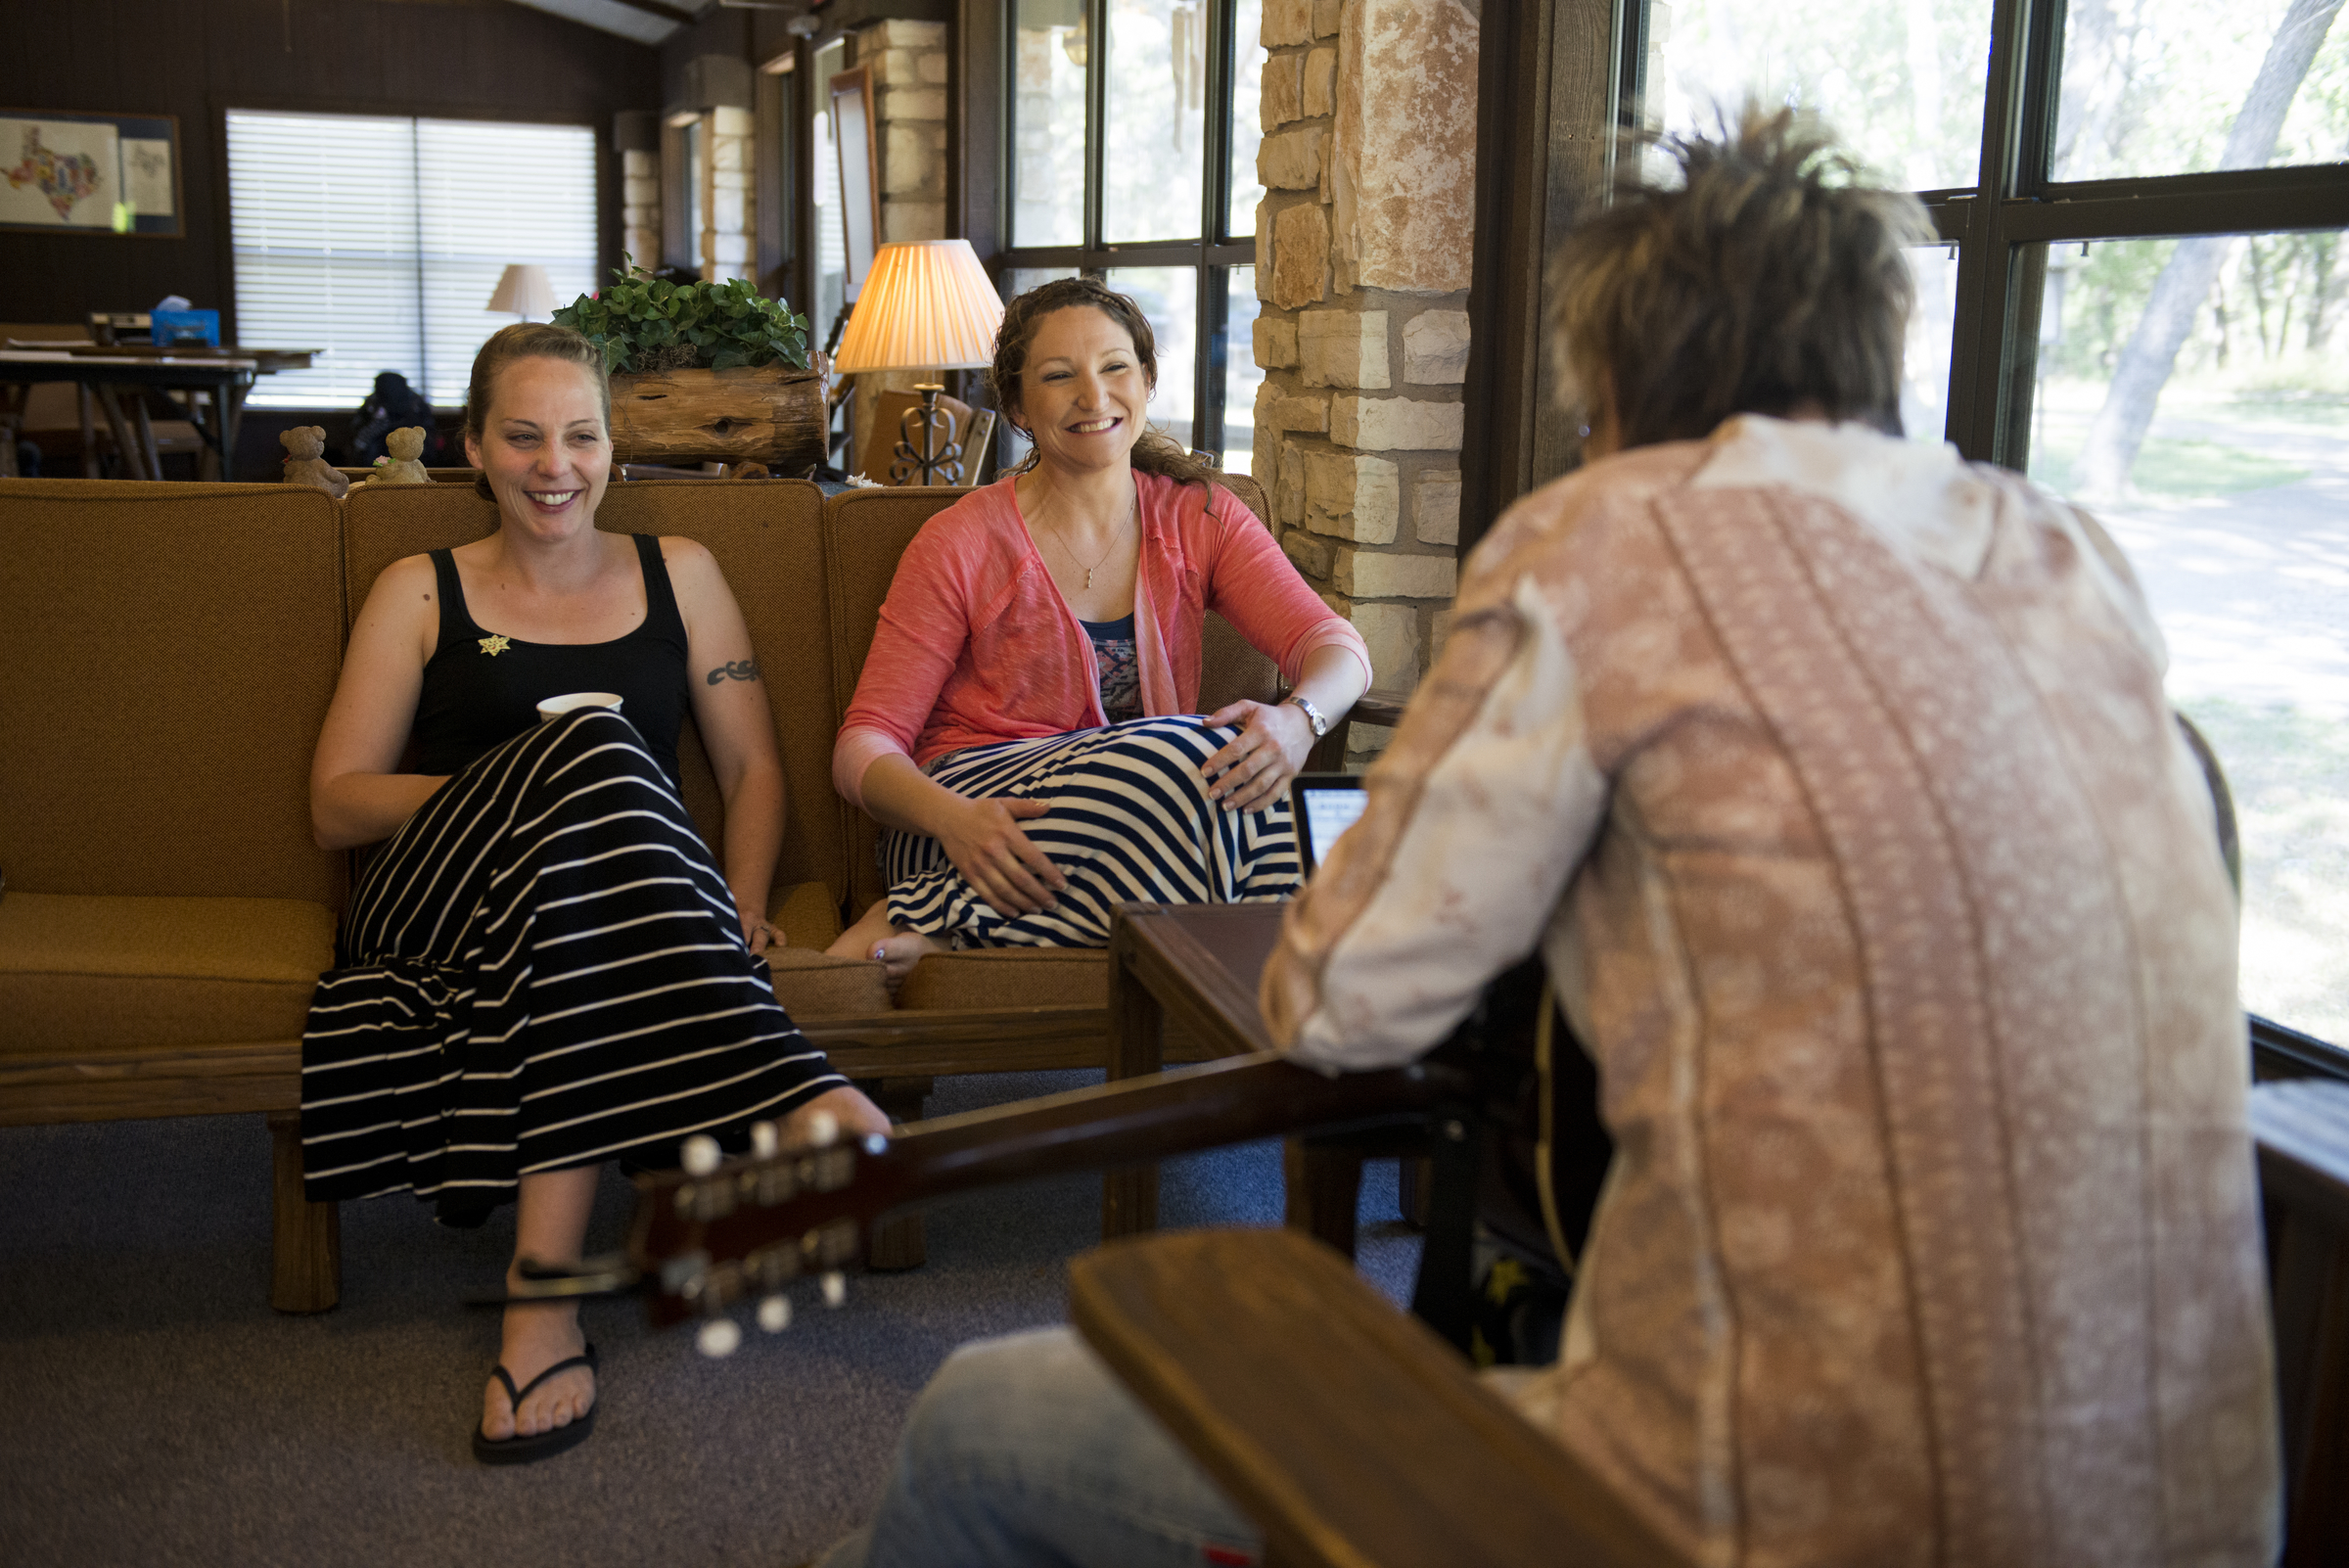 """Brothers"" Co-Writers and Iraq War Veterans Meghan Counihan and Britney Pfad with Mary Gauthier at a Songwriting With Soldiers Retreat."